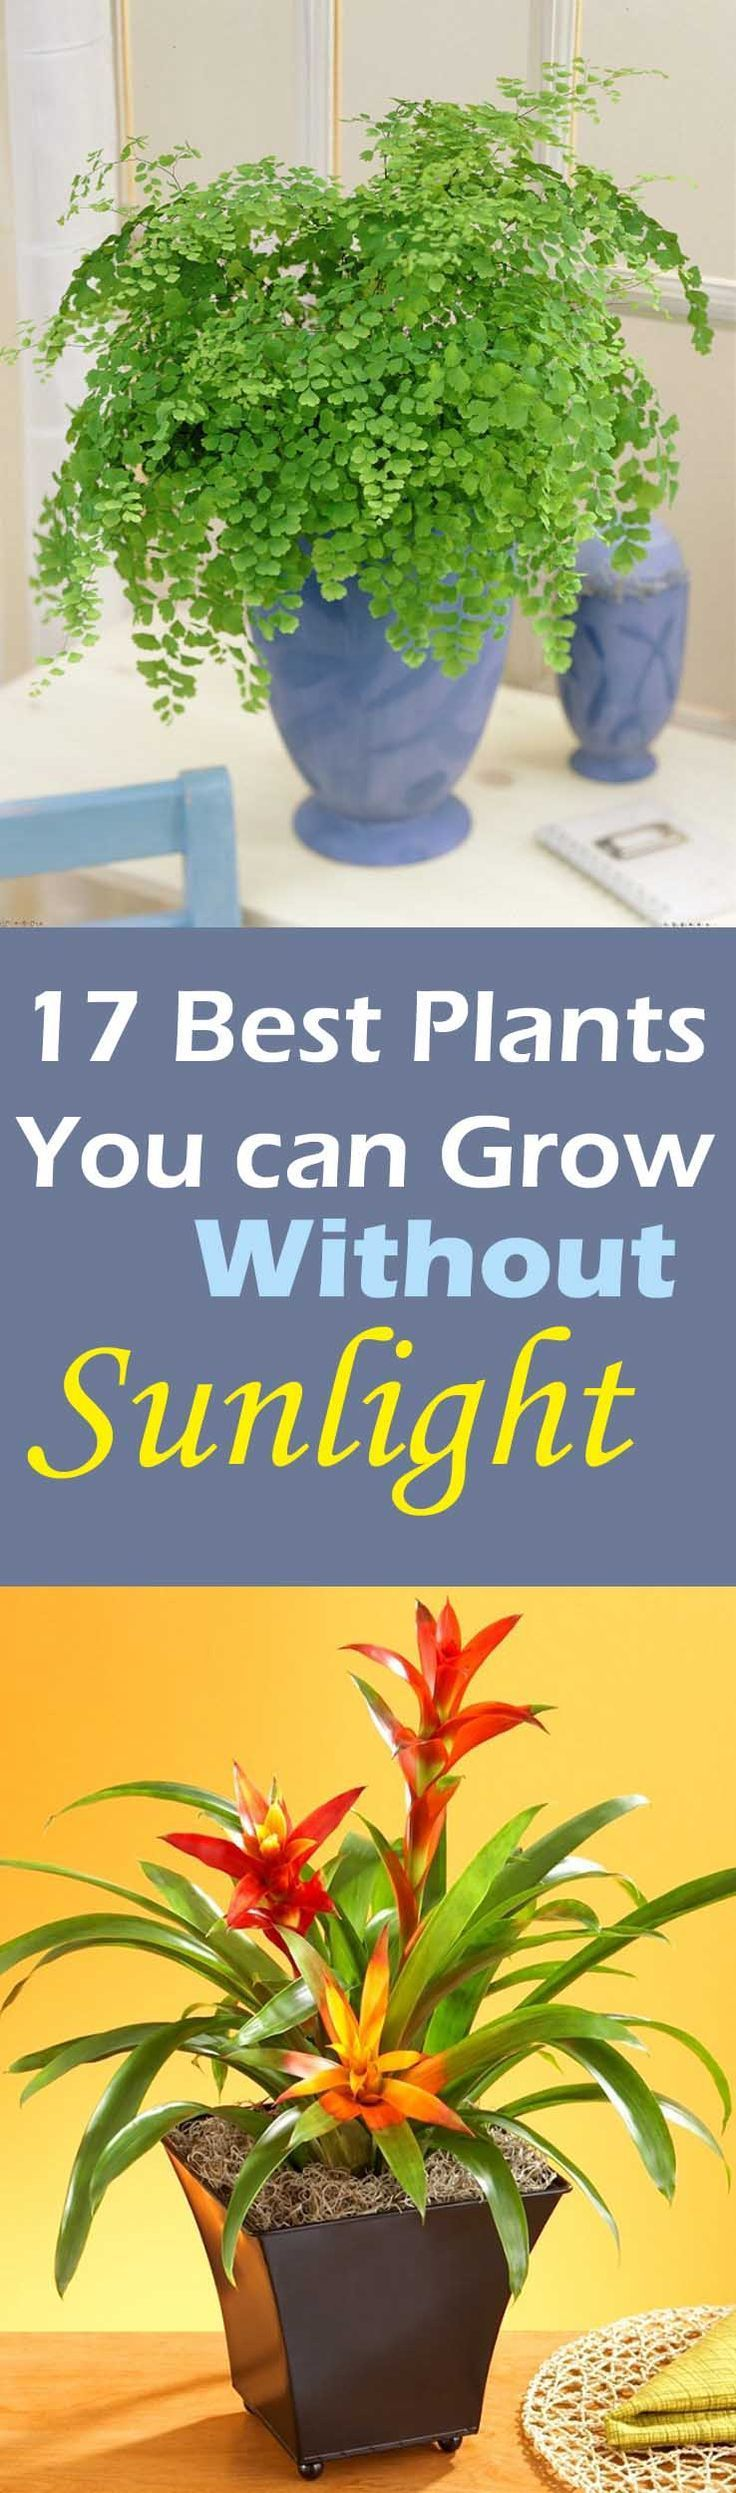 When you are looking for such plants choose that are known for their ability to grow in indirect sunlight. They are ideal